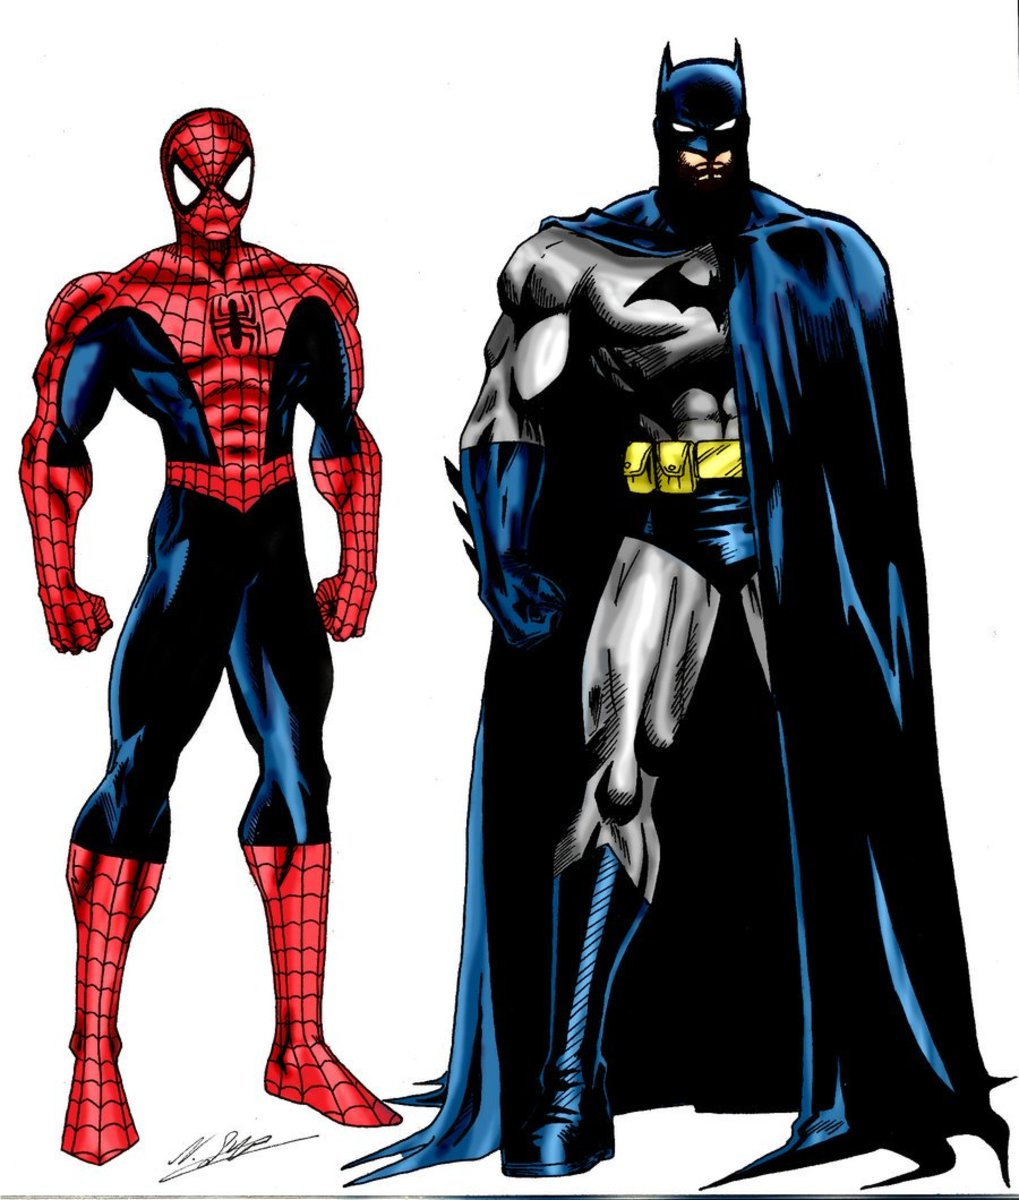 Spiderman v Batman